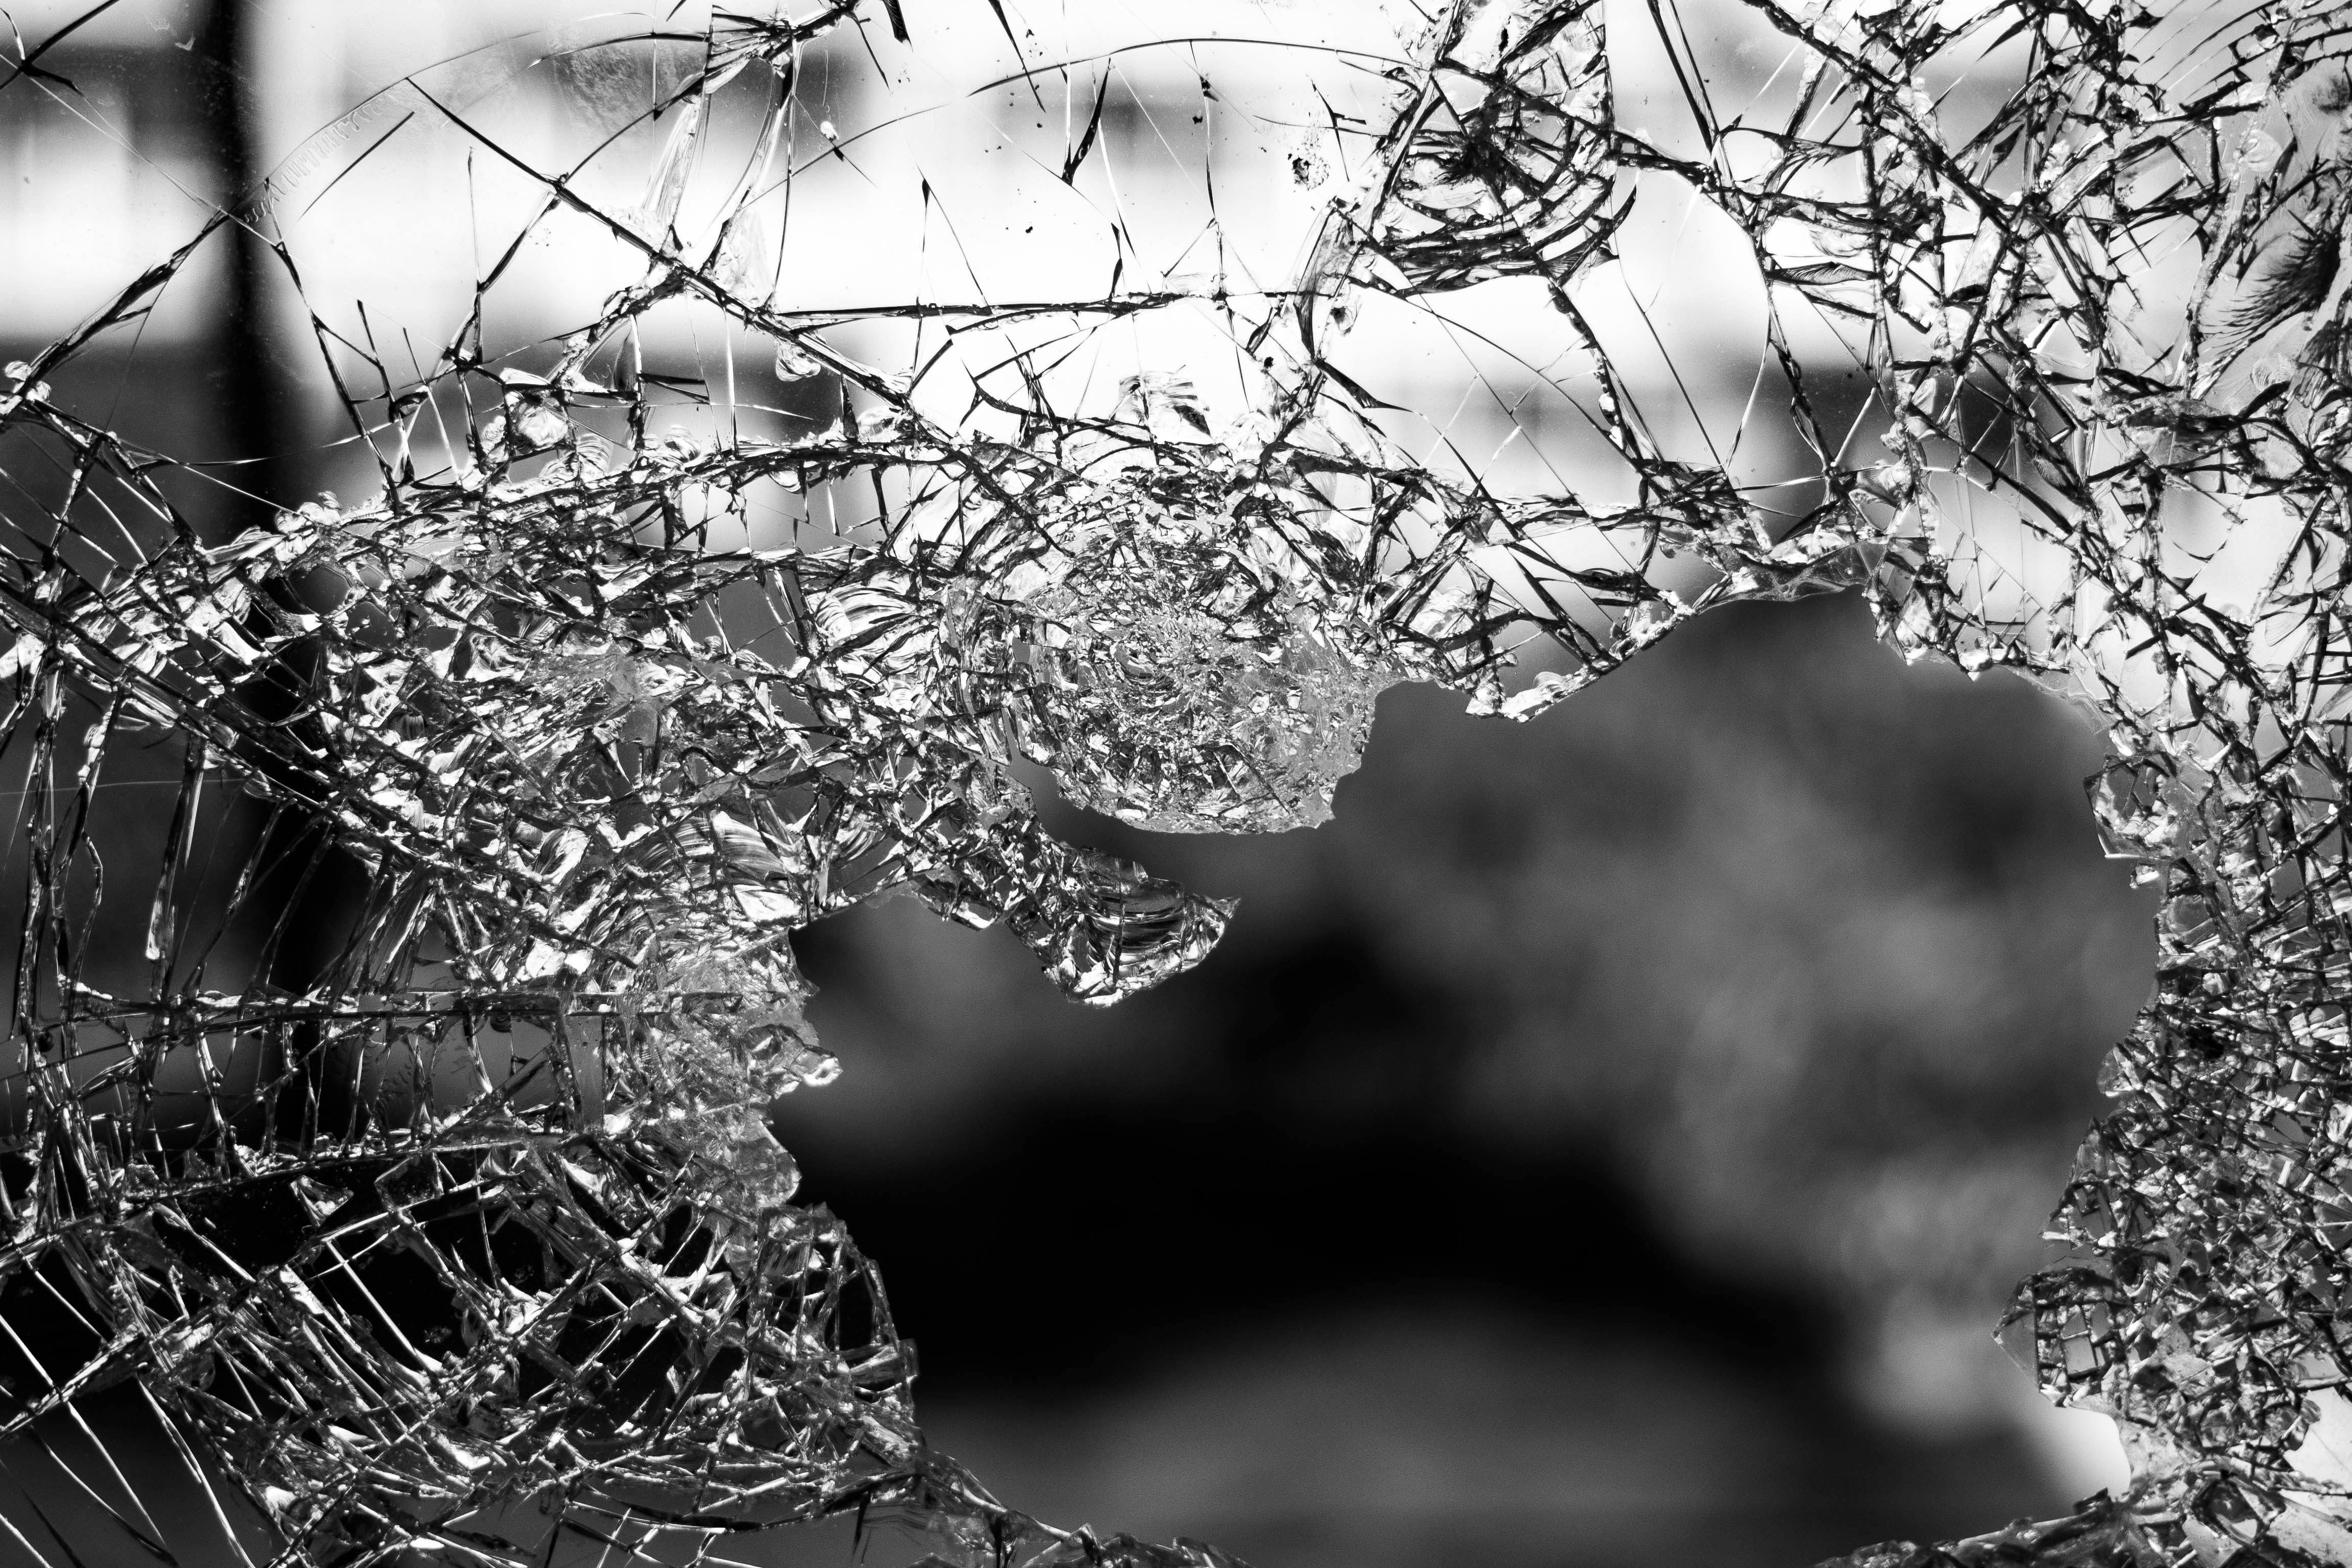 macrophotography of cracked glass screen